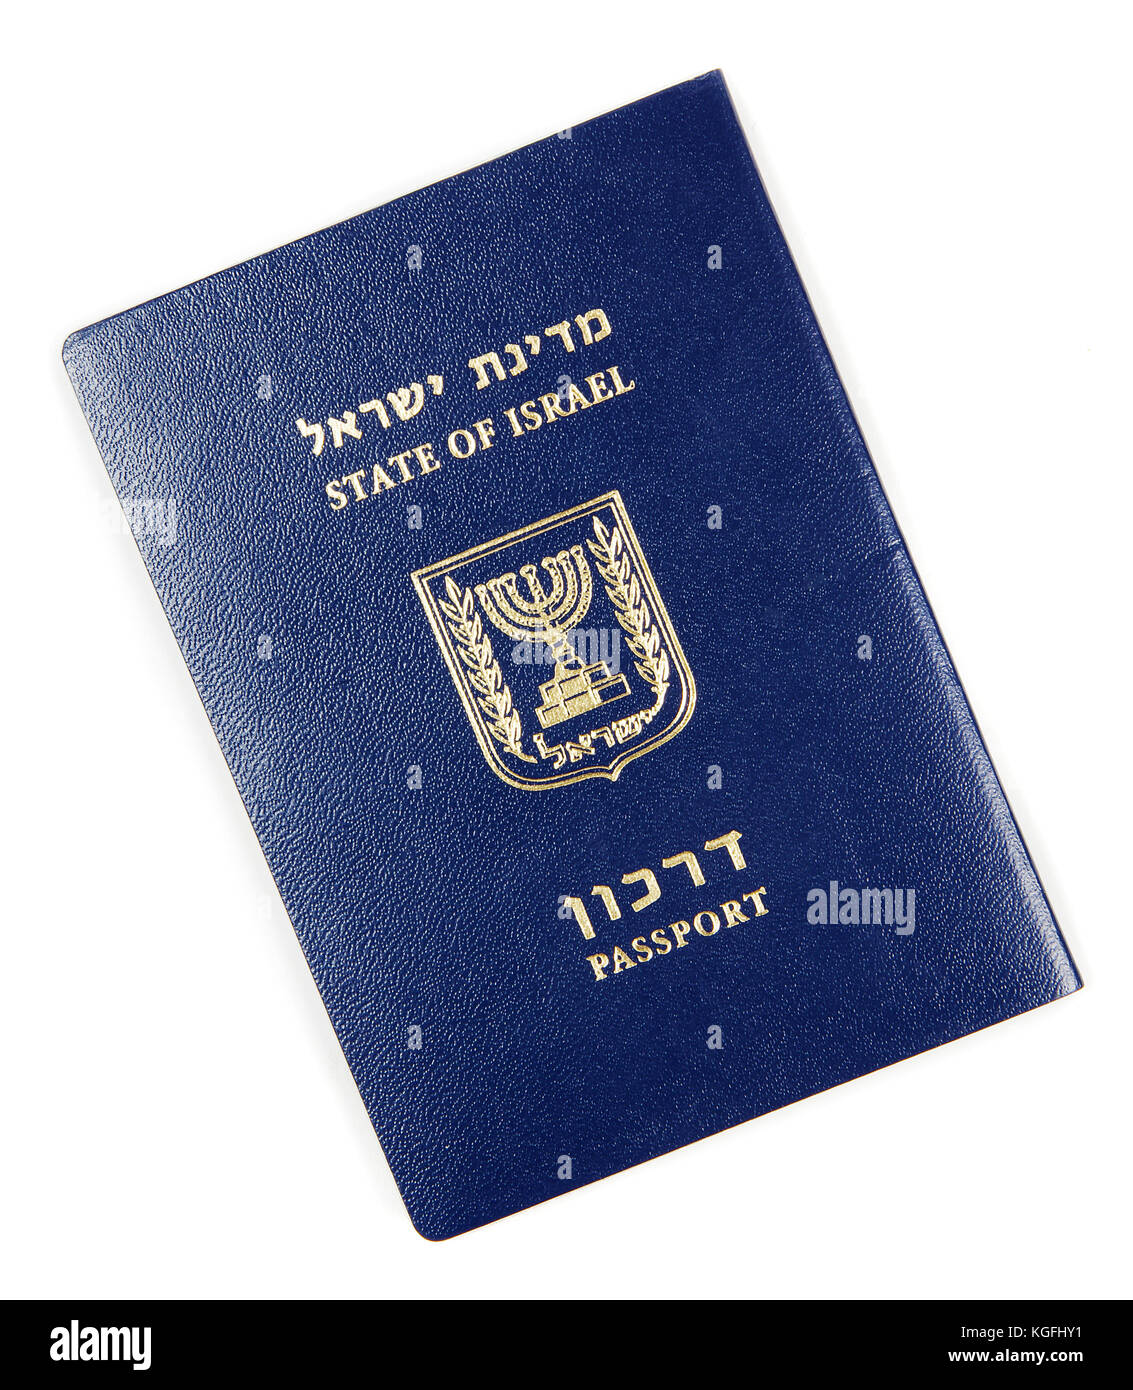 how to get israeli citizenship